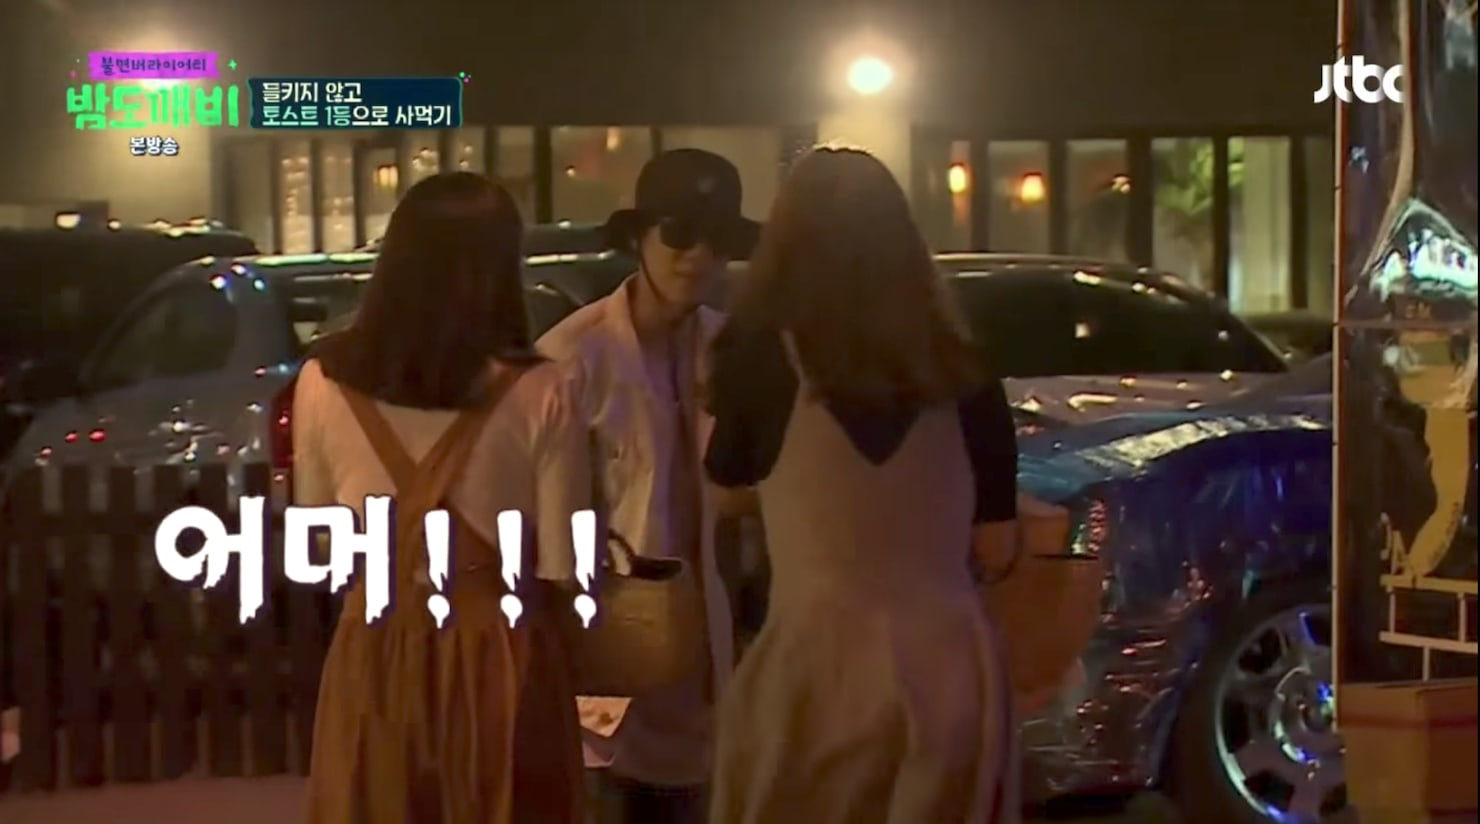 Watch: NUESTs JR Adorably Fails To Go Incognito During Mission For Night Goblin